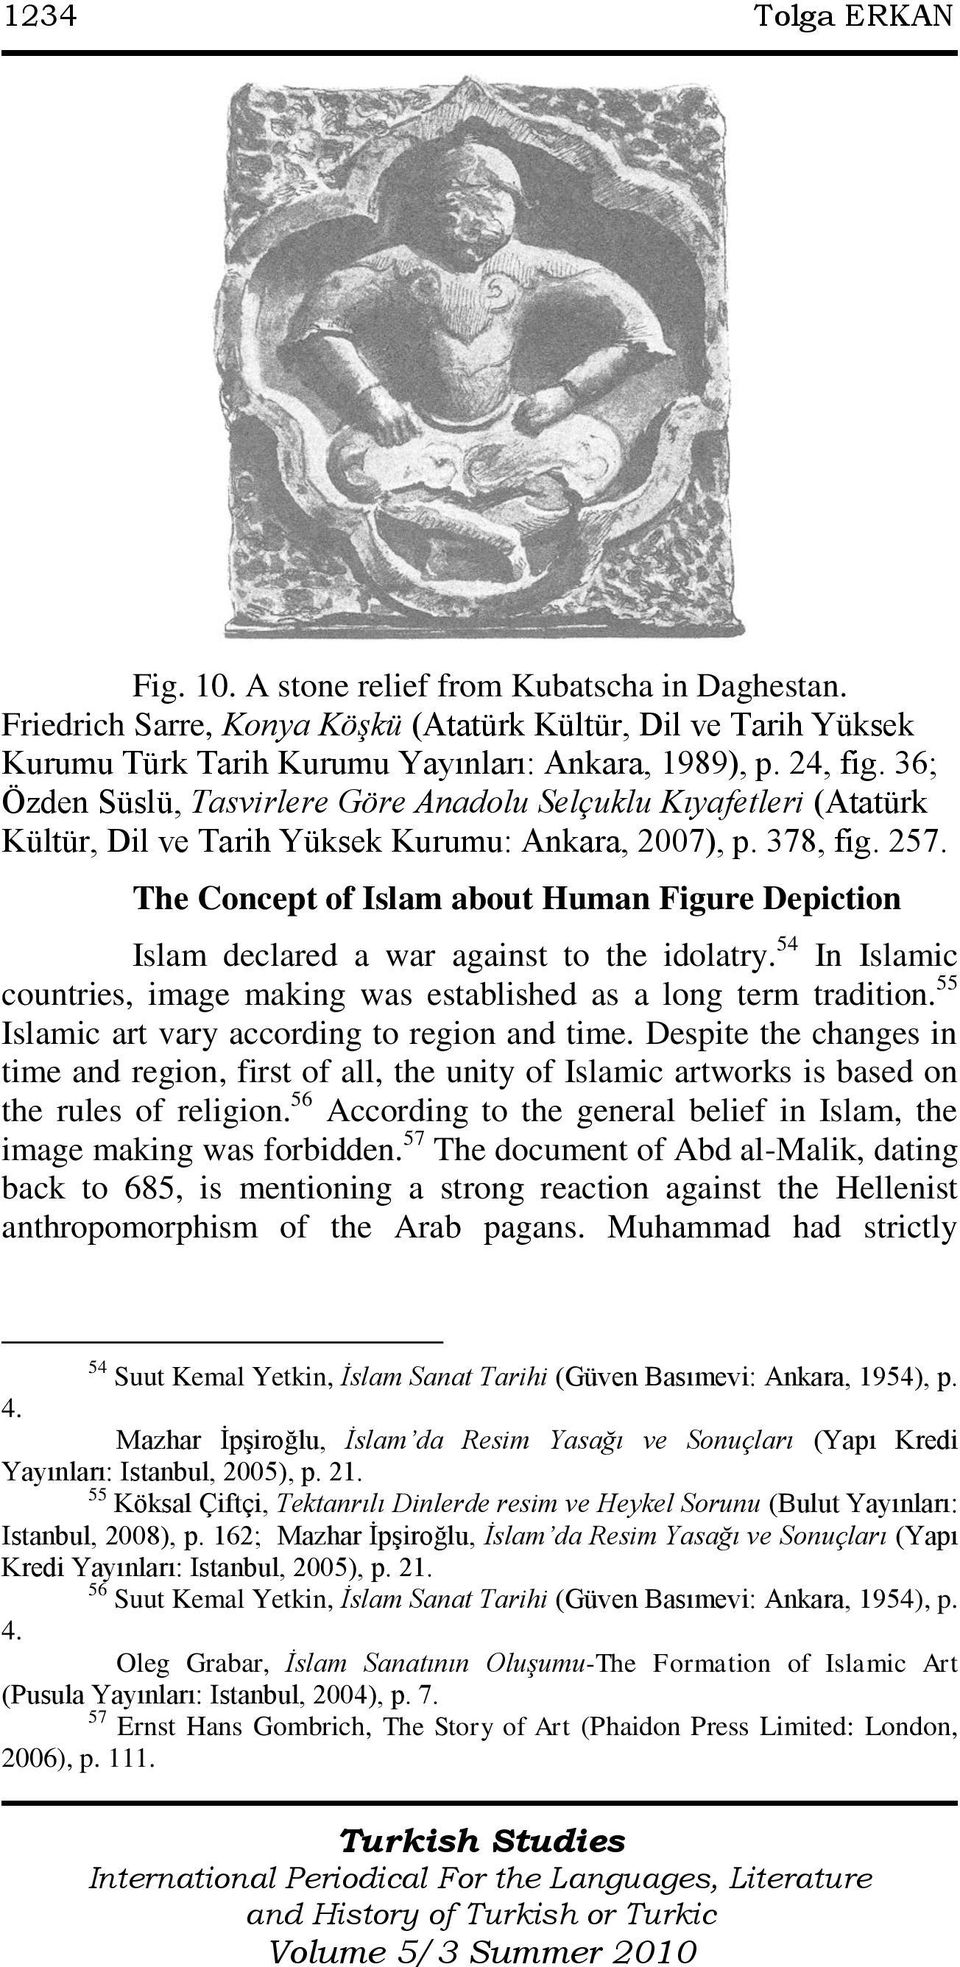 The Concept of Islam about Human Figure Depiction Islam declared a war against to the idolatry. 54 In Islamic countries, image making was established as a long term tradition.